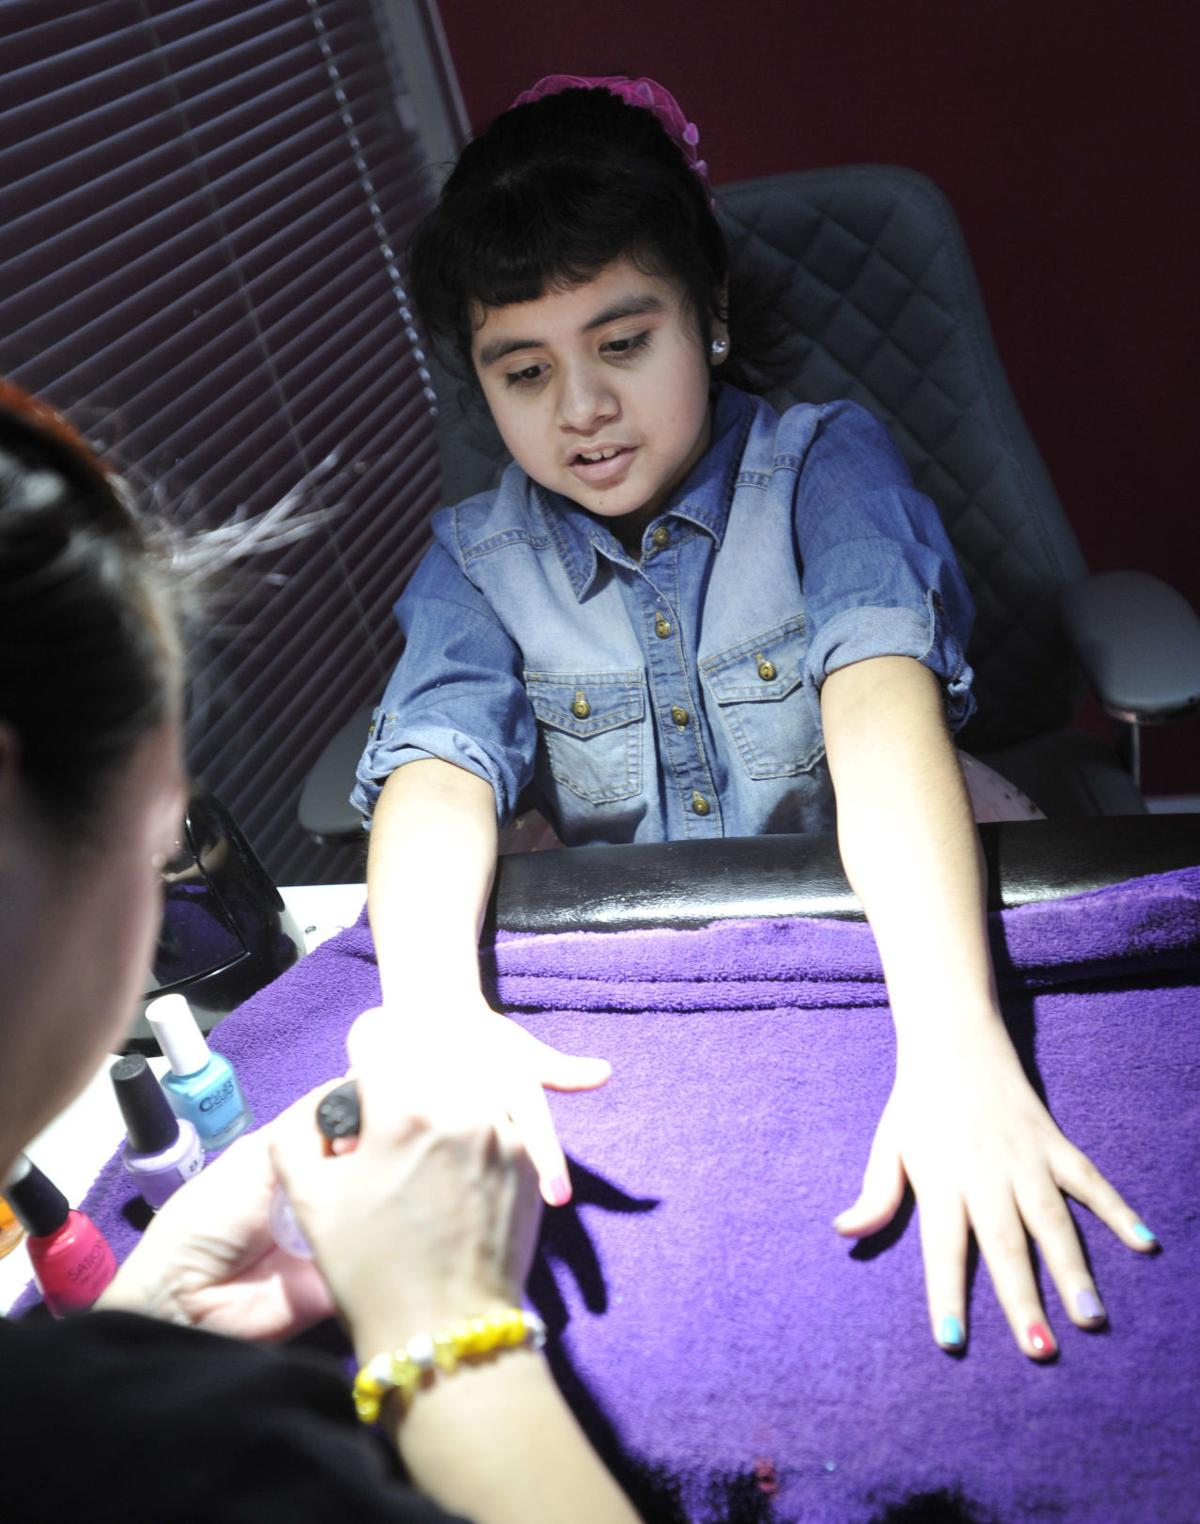 Sofia Matias, 10, gets a manicure from Natalie Curley during the spa day event for children with cancer at Utopia Nails & Spa on Saturday, Feb. 24, 2018.